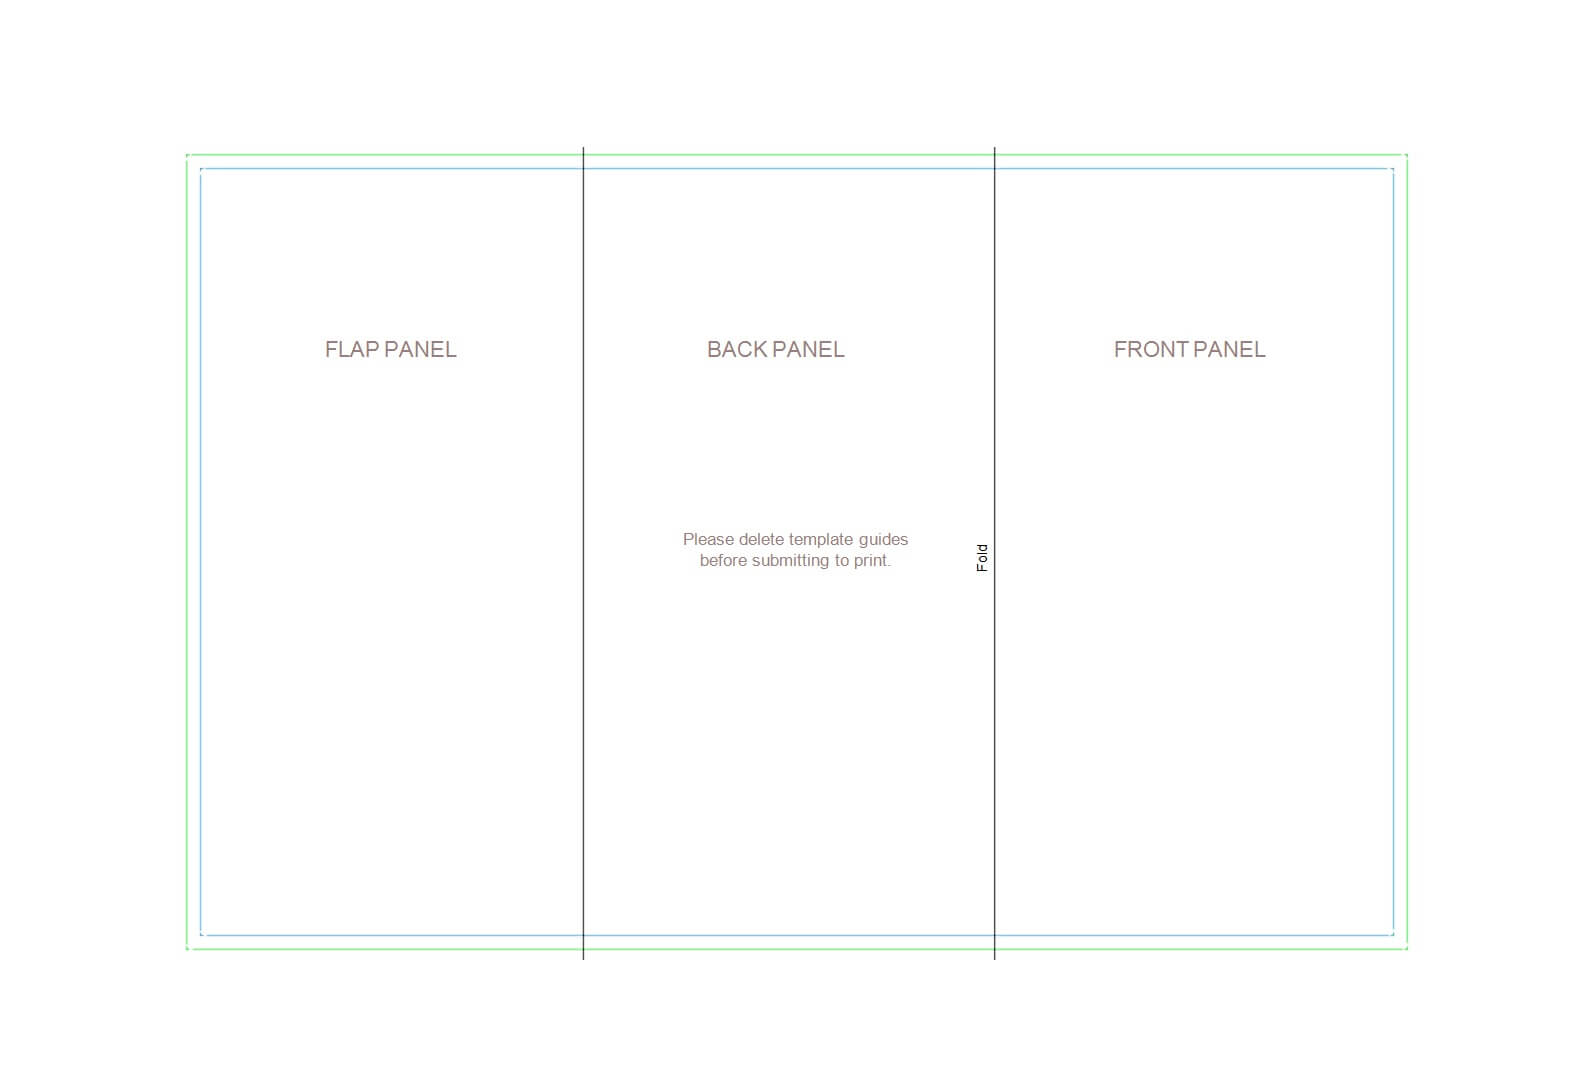 50 Free Pamphlet Templates [Word / Google Docs] ᐅ Template Lab Pertaining To Brochure Templates For Google Docs